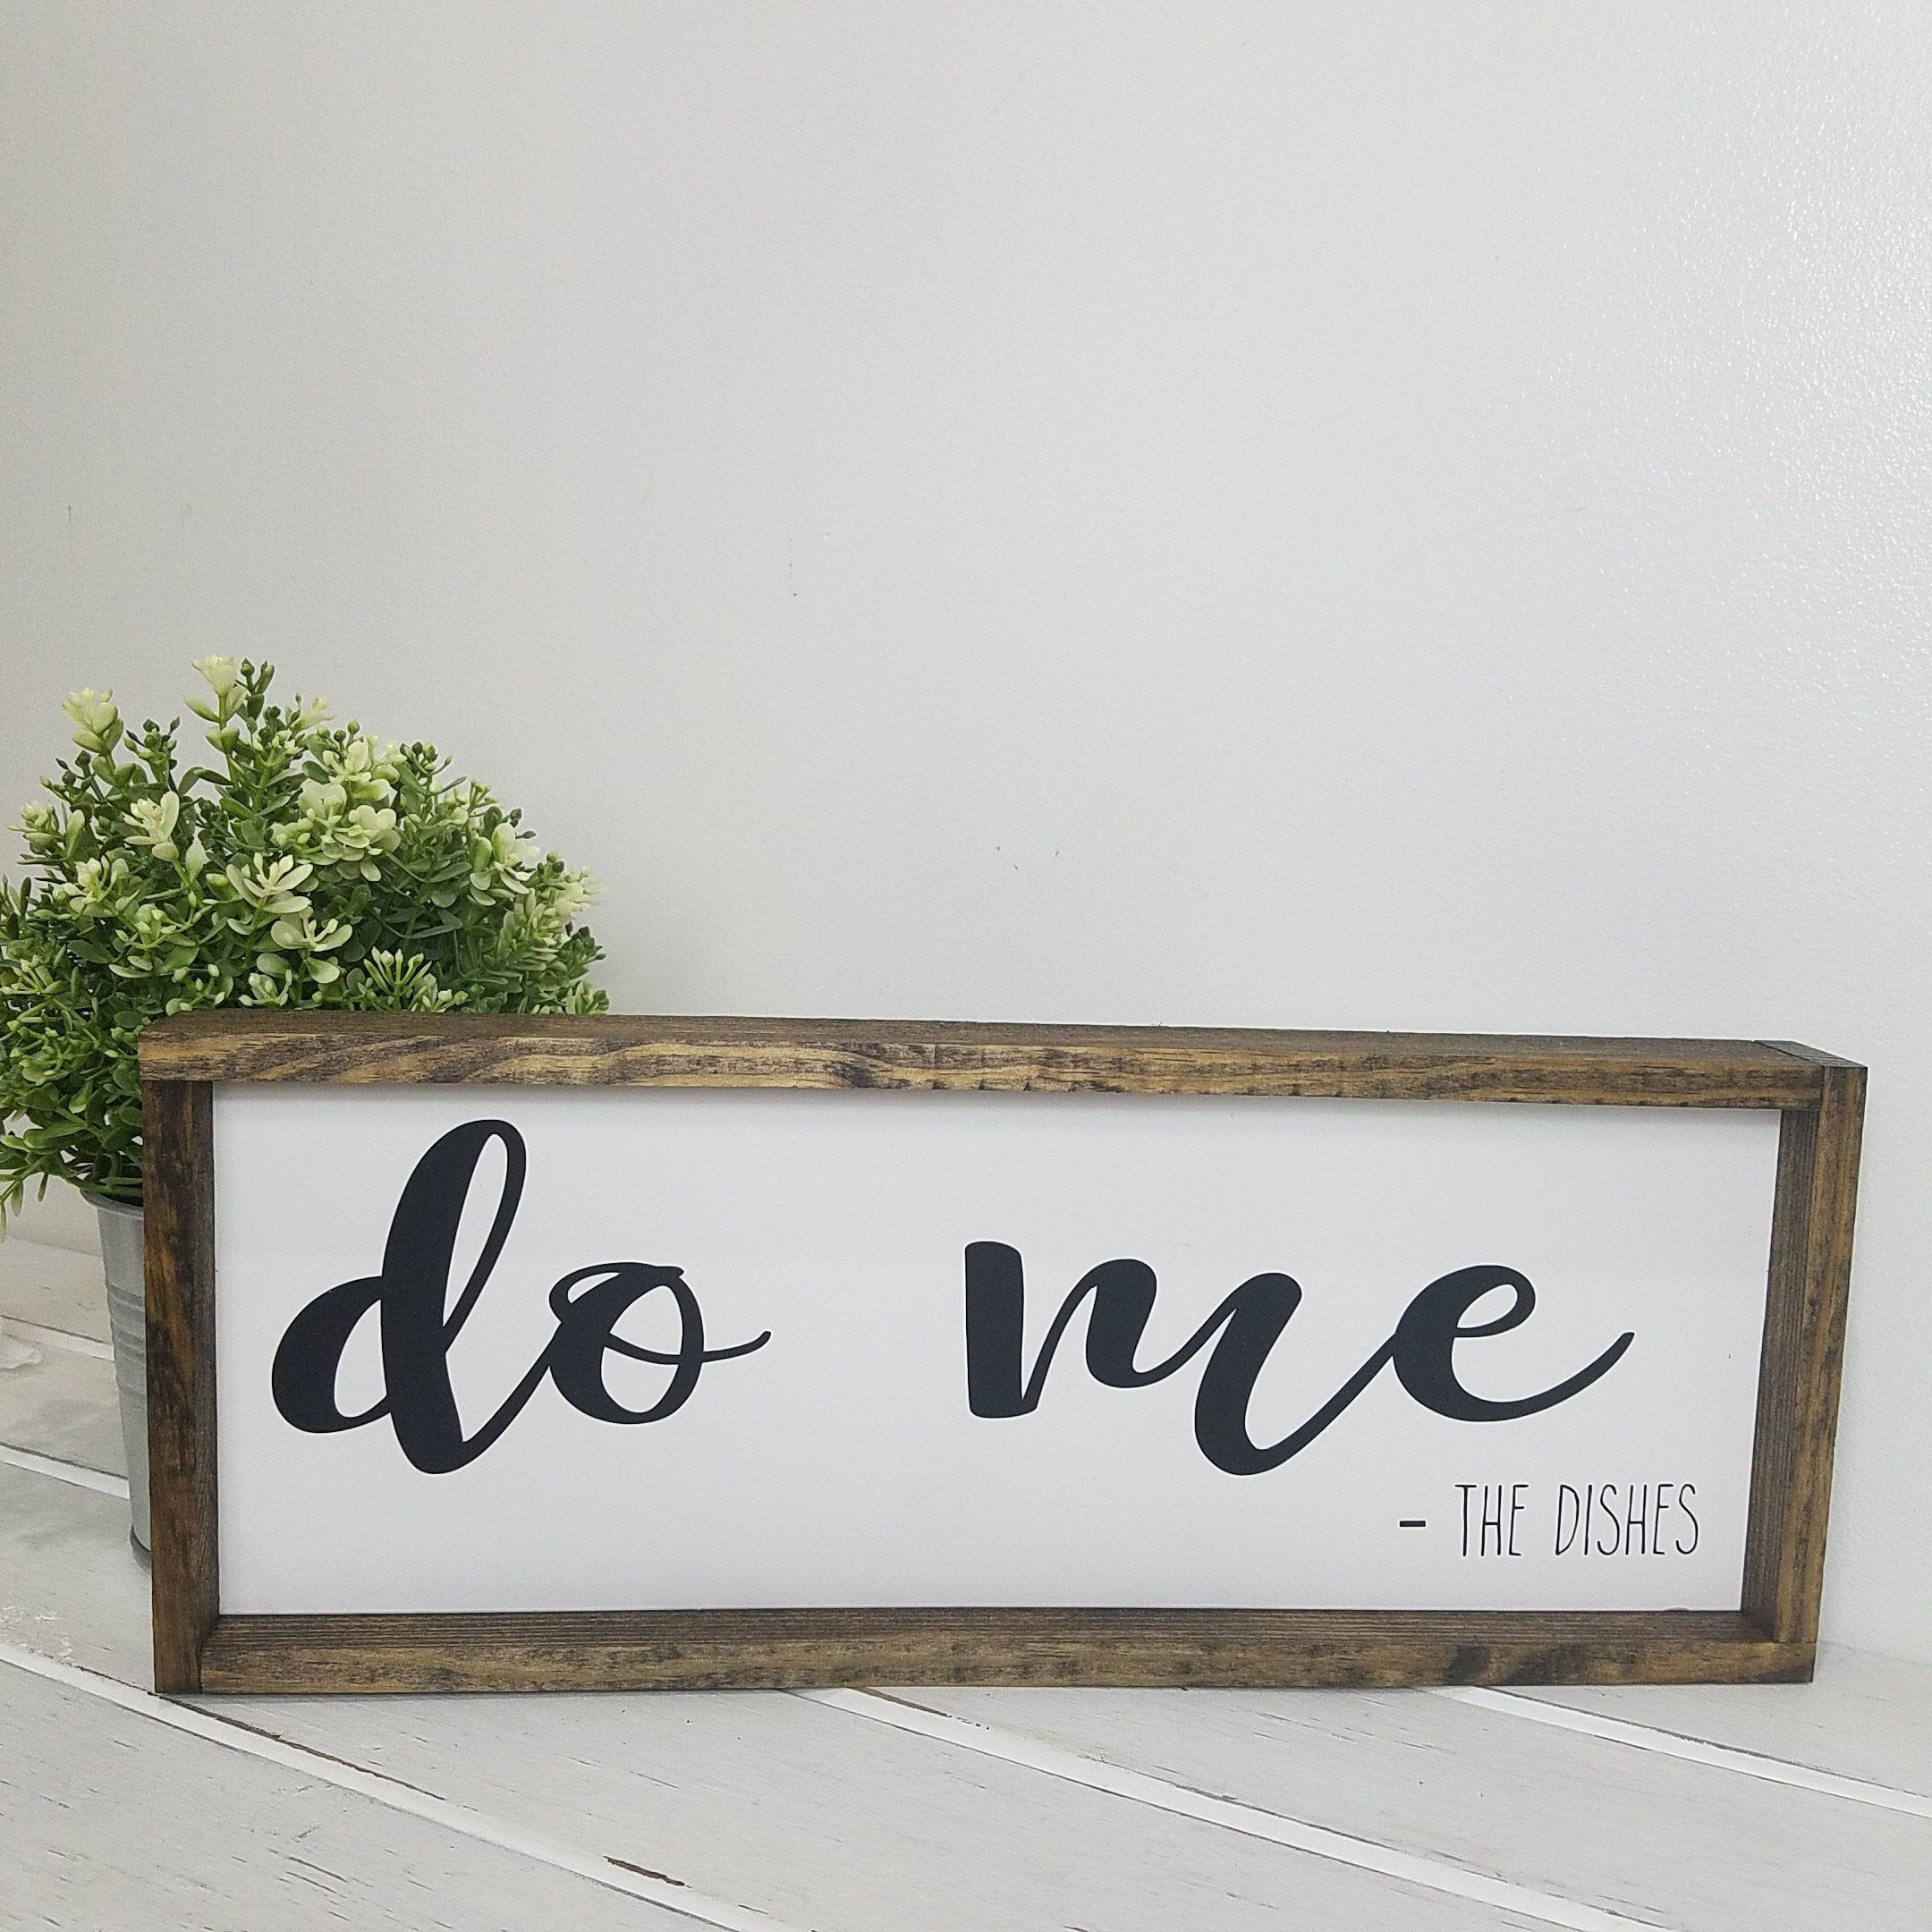 Do me the dishes funny farmhouse kitchen decor rustic wood